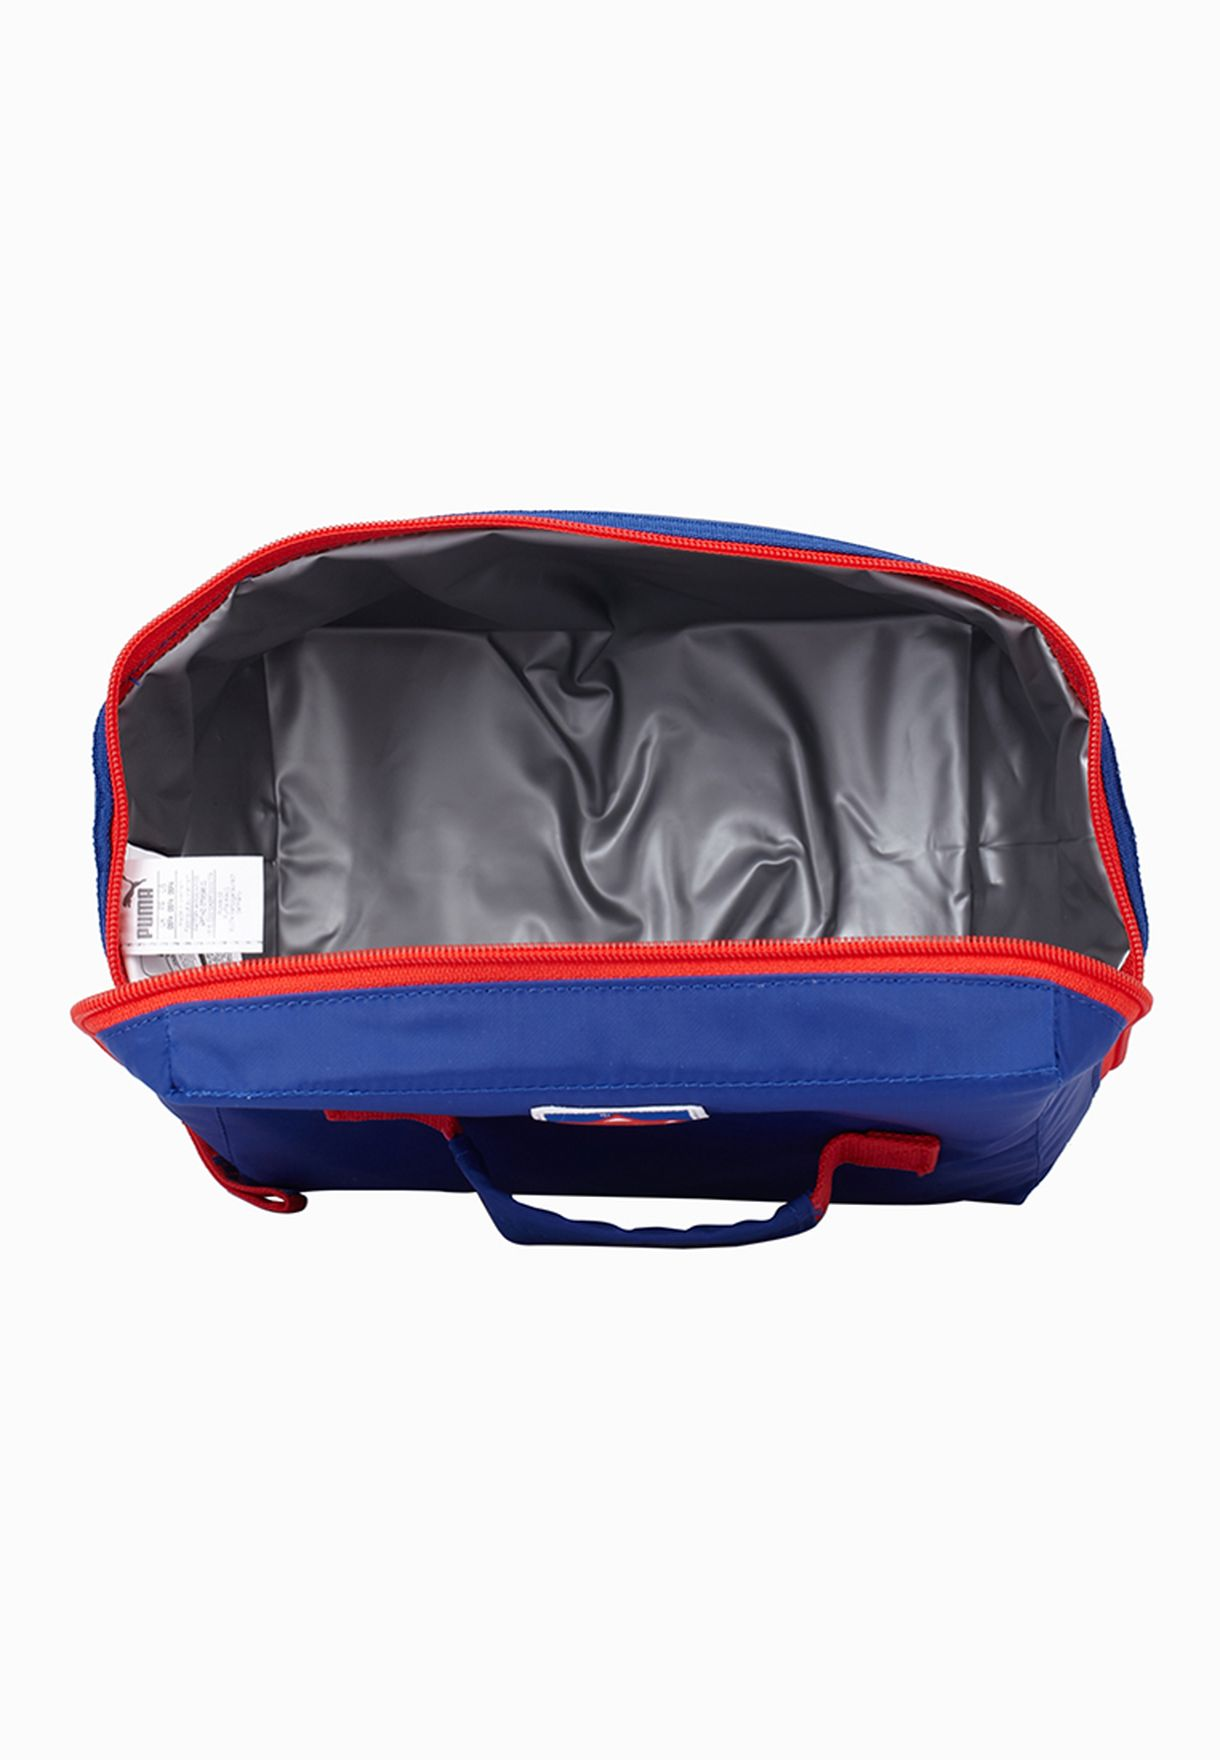 78e2bba6c3 Shop PUMA blue Puma Superman Lunch Bag 7359601 for Kids in UAE ...